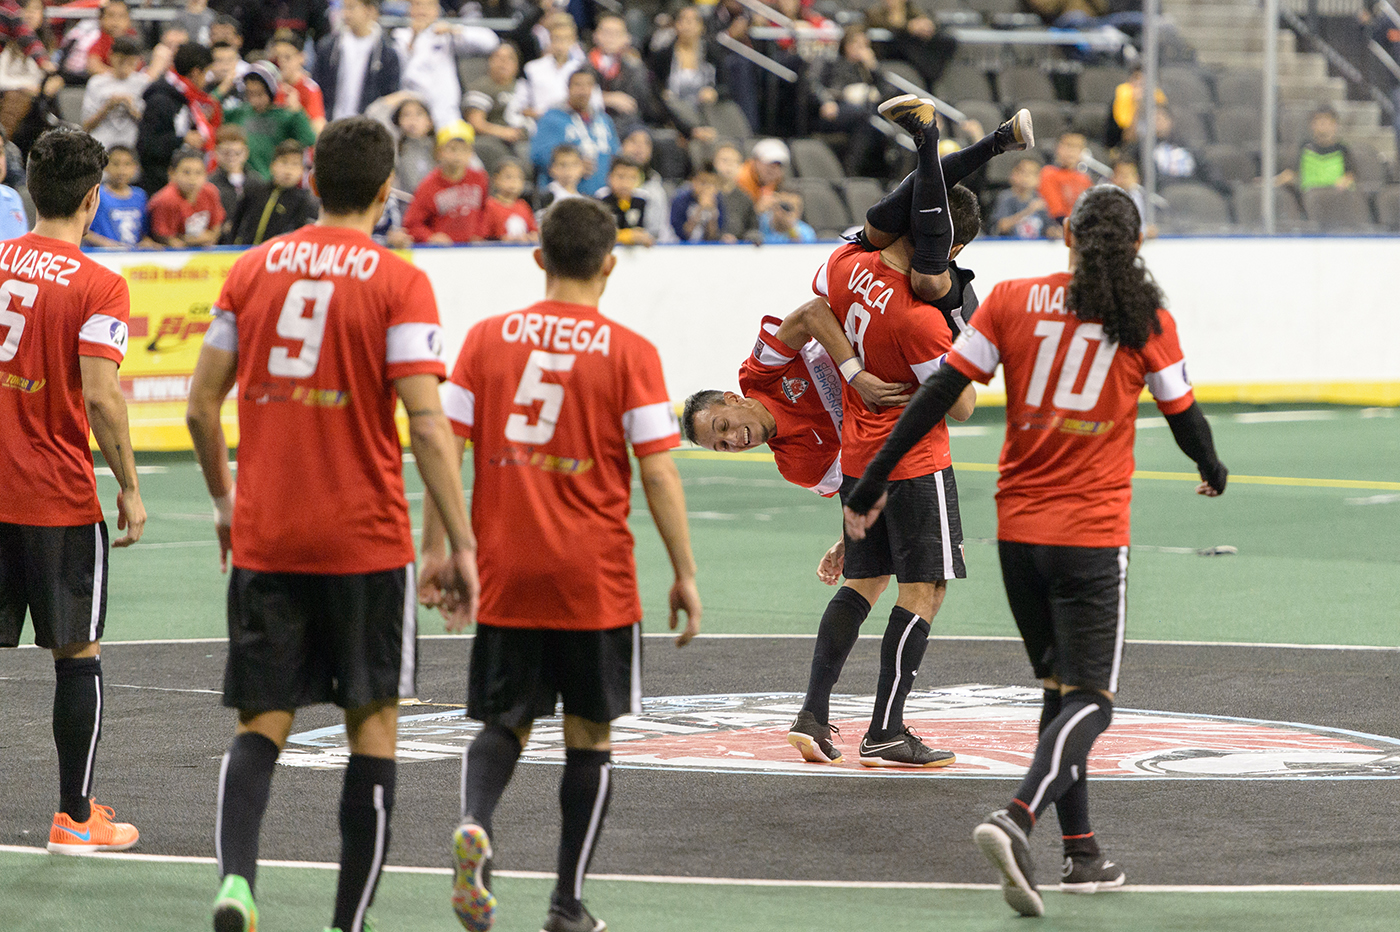 Hoffman Estates, IL, USA, December 19, 2015:  Major Arena Soccer League action between the Waza Flo and the Chicago Mustangs at the Sears Centre Arena. Photographer: Daniel Bartel